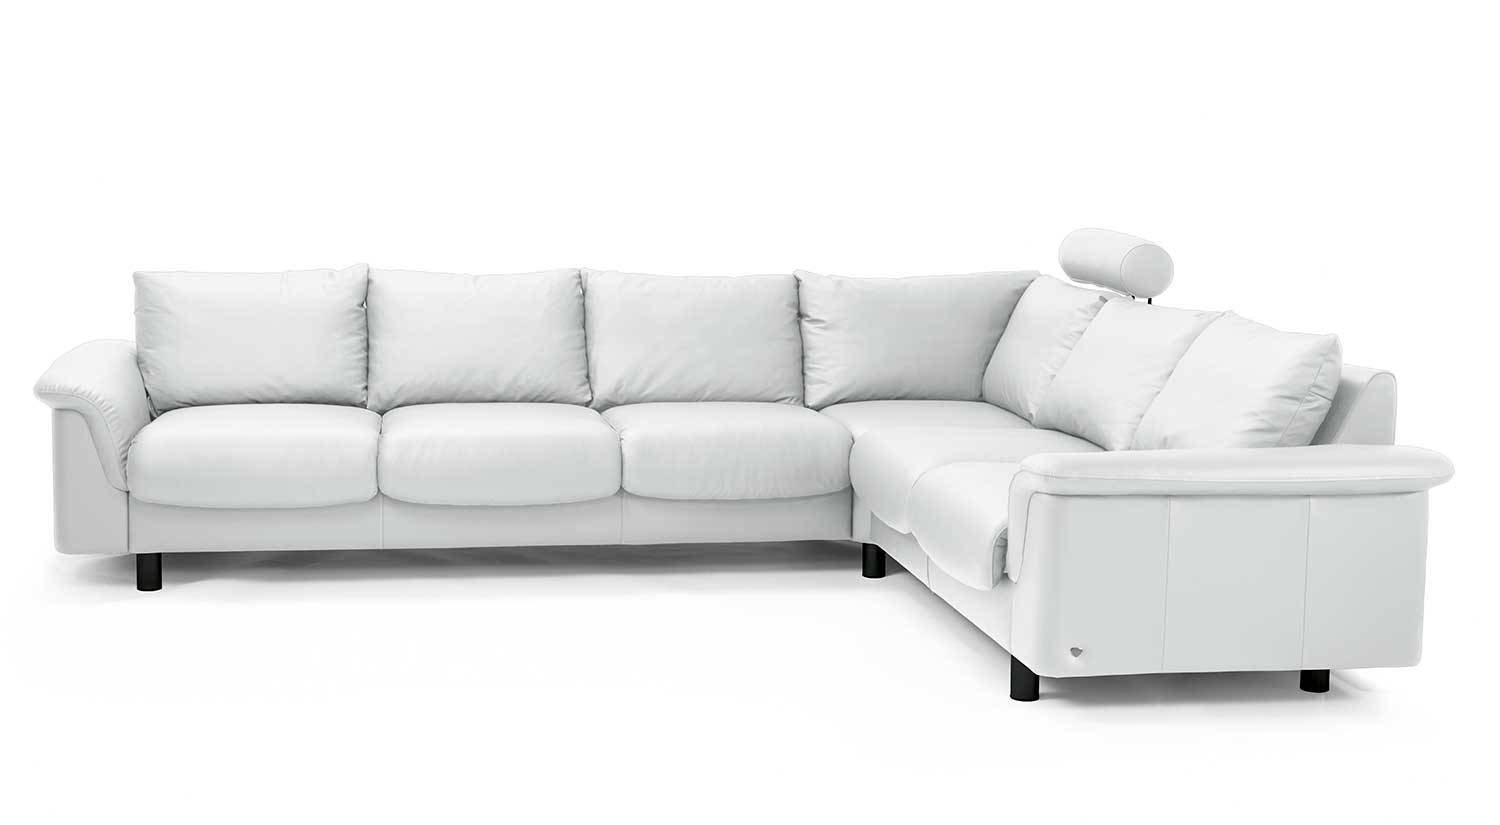 Circle Furniture - E300 Ekornes Sectional | Designer Sectionals Ma regarding Ekornes Sectional Sofa (Image 6 of 30)